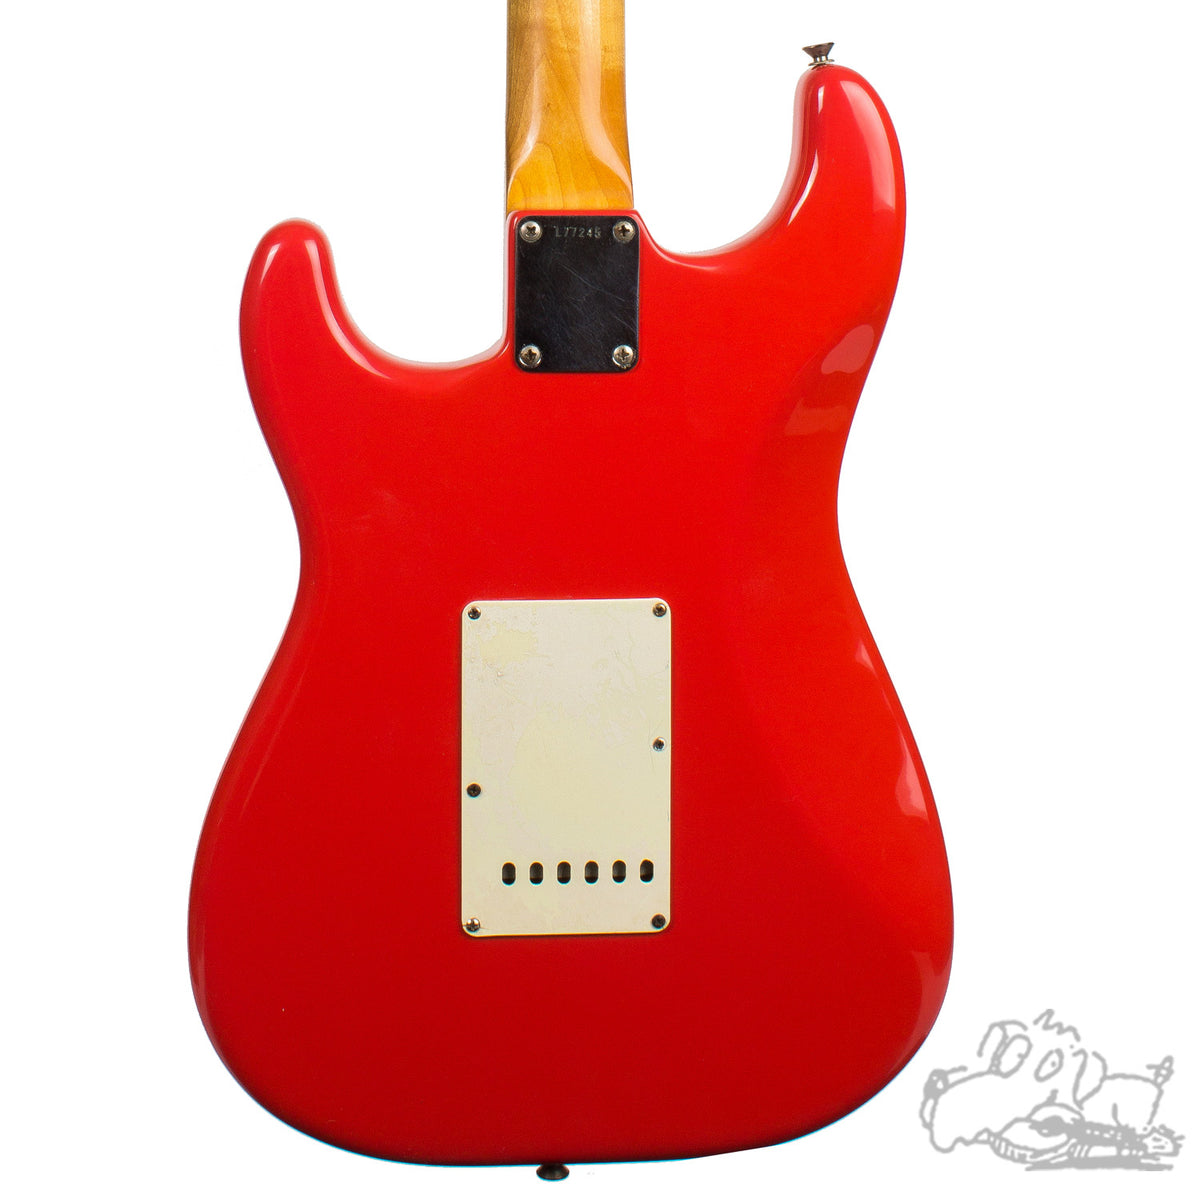 1965 Fender Stratocaster refinished in Fiesta Red